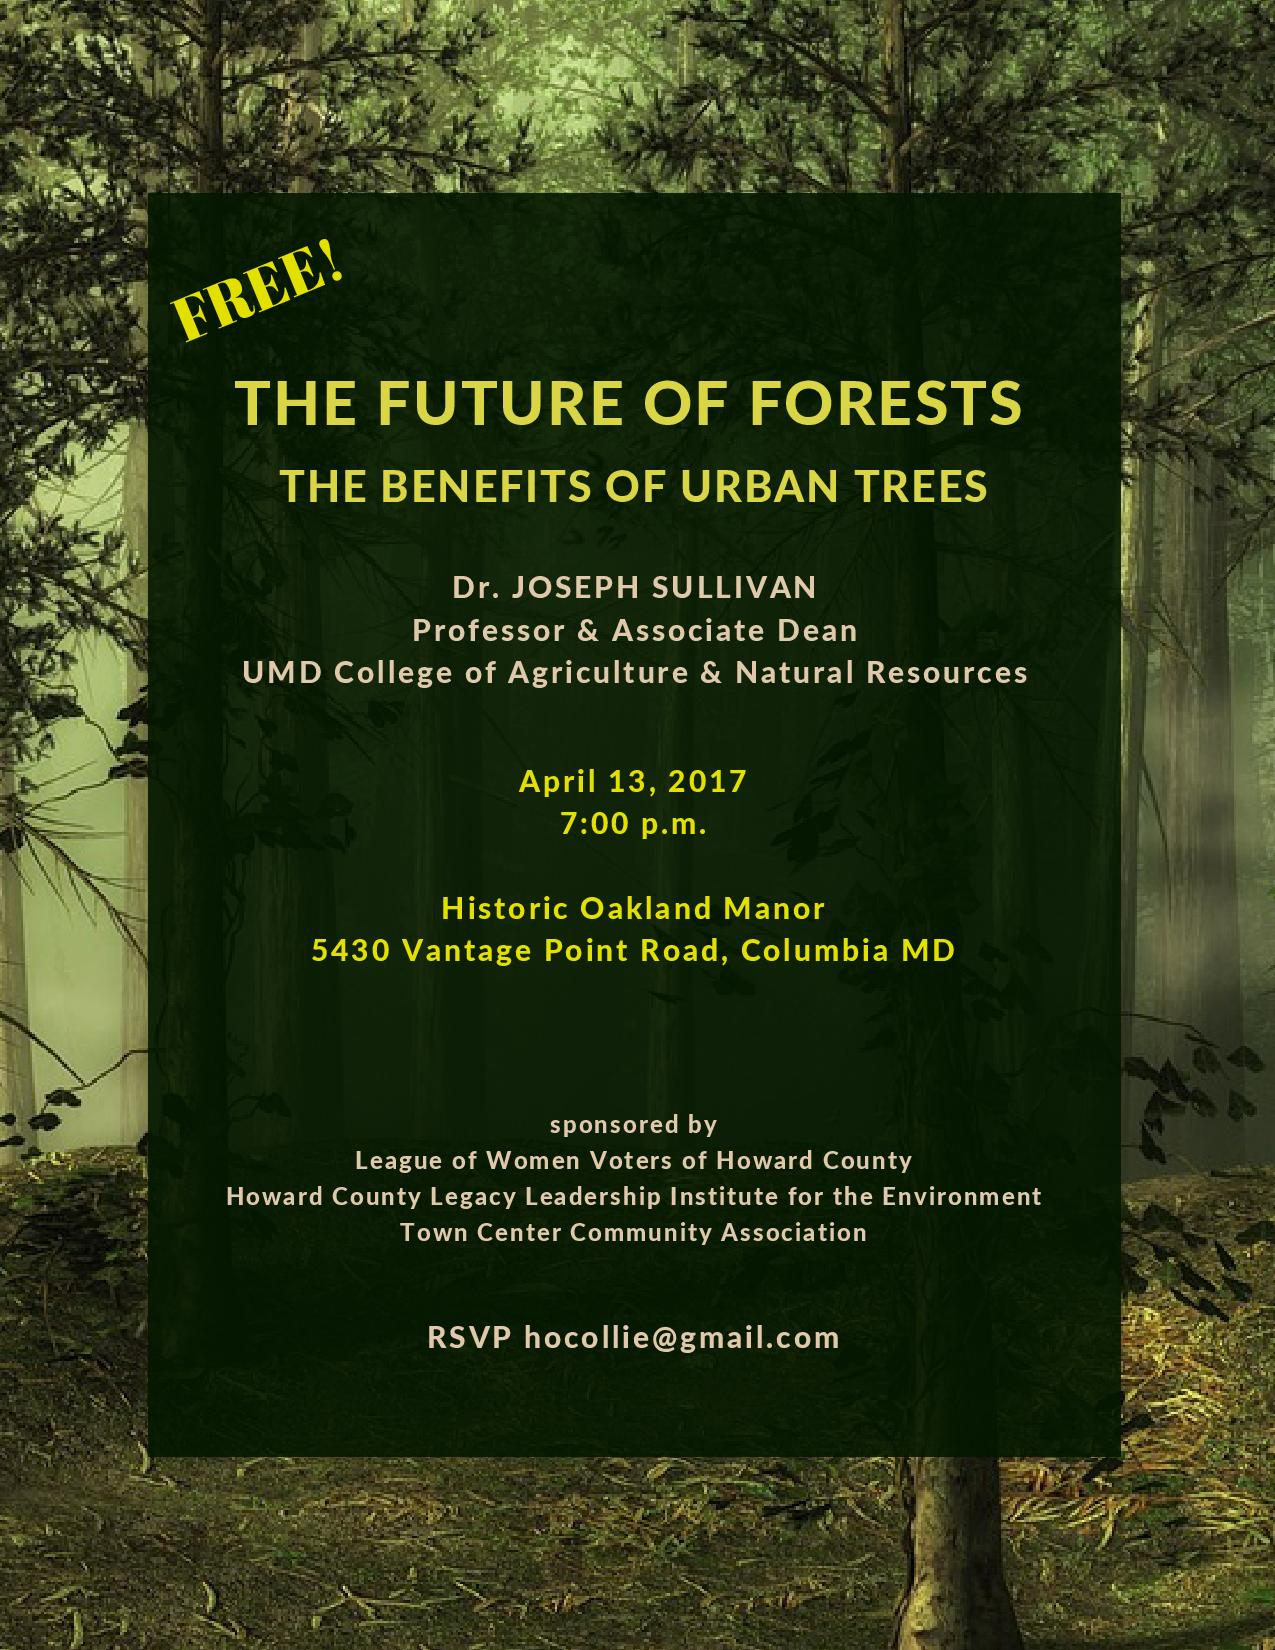 The_Future_0f_Forests.4-13-17.jpg